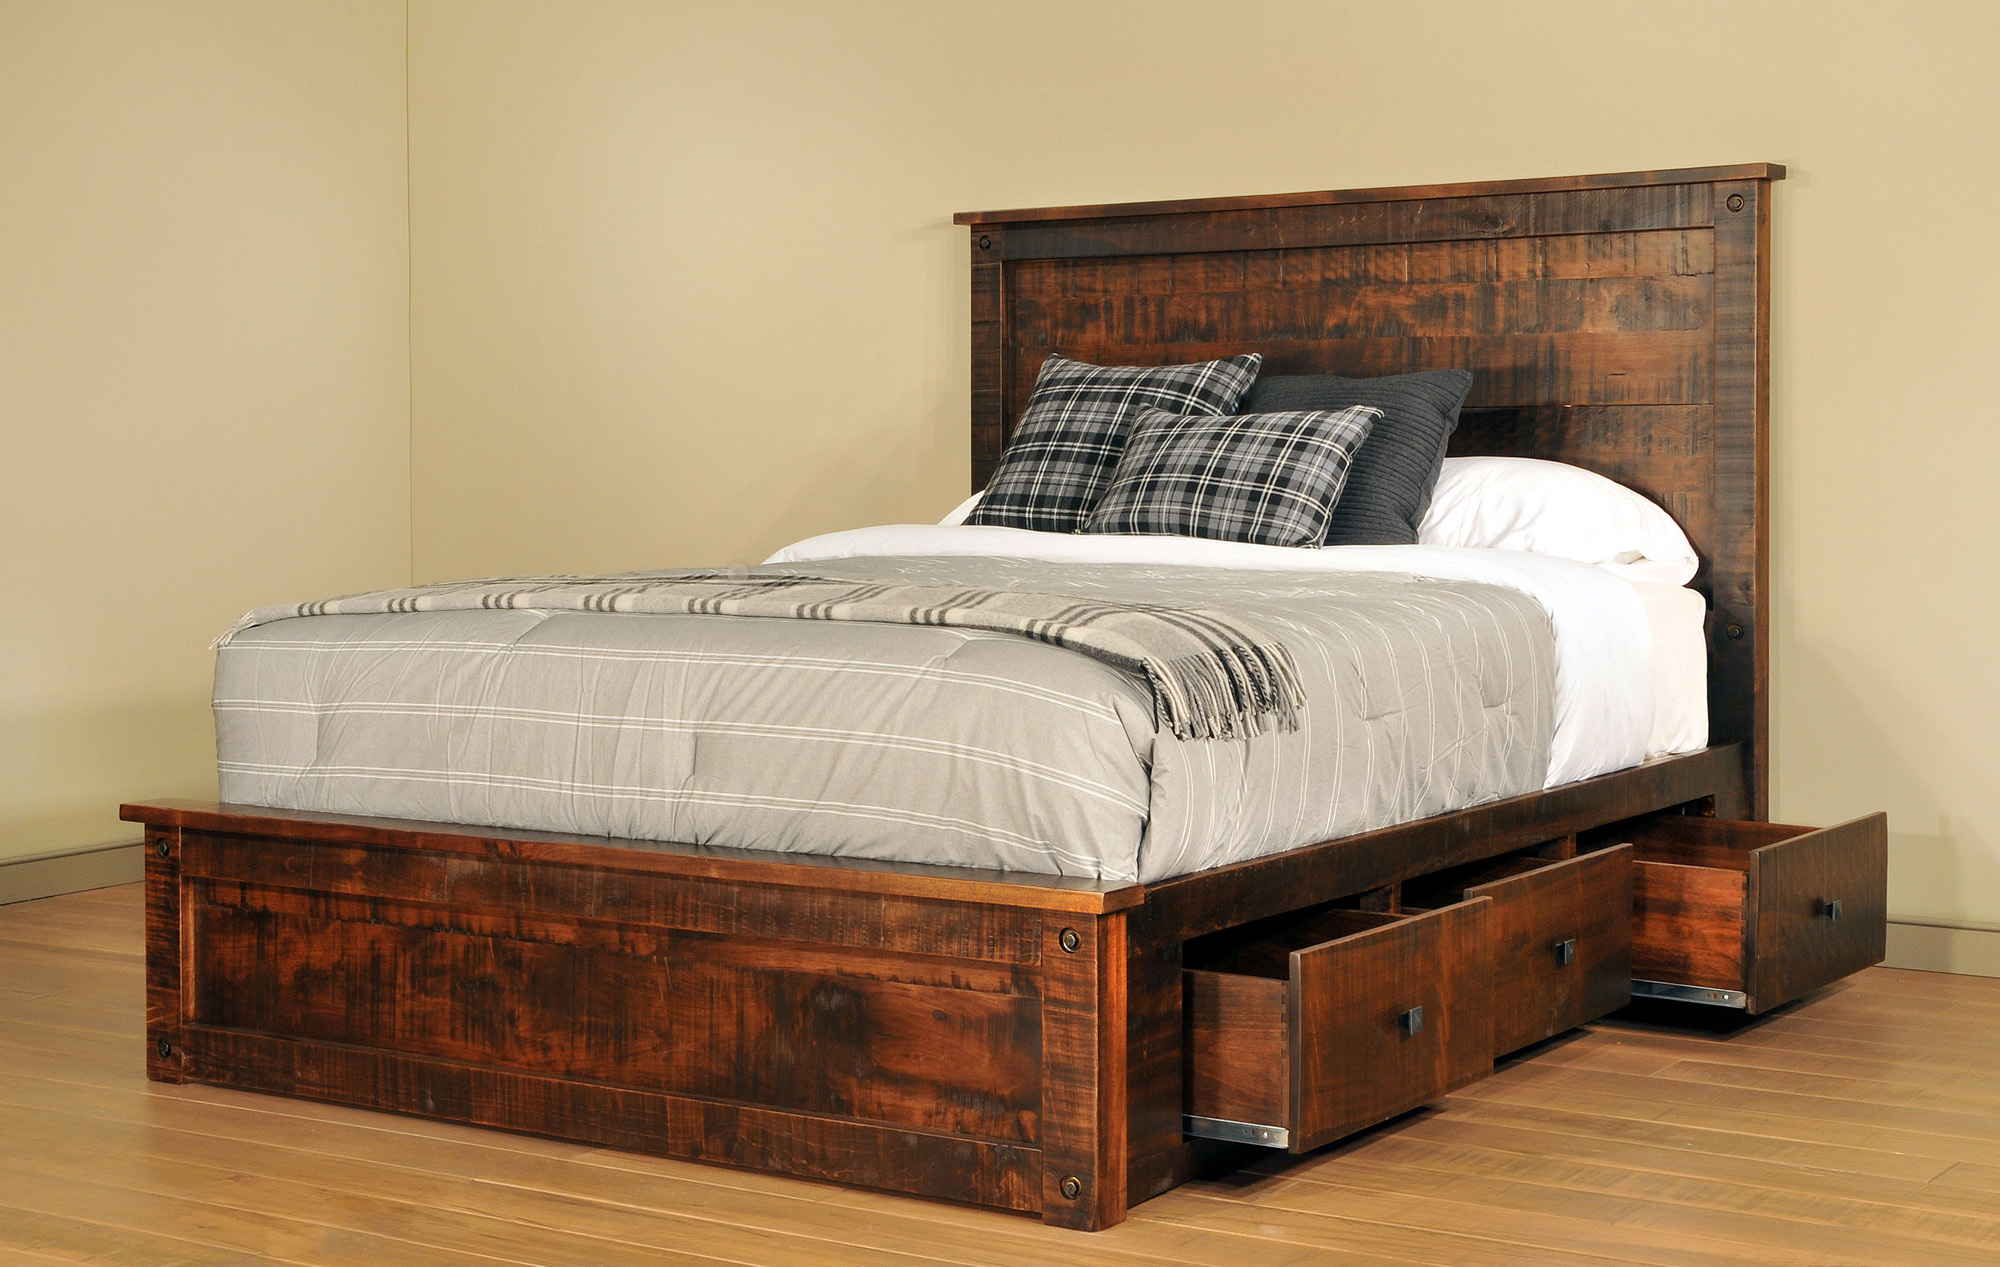 Muskoka Bed by Ruff Sawn